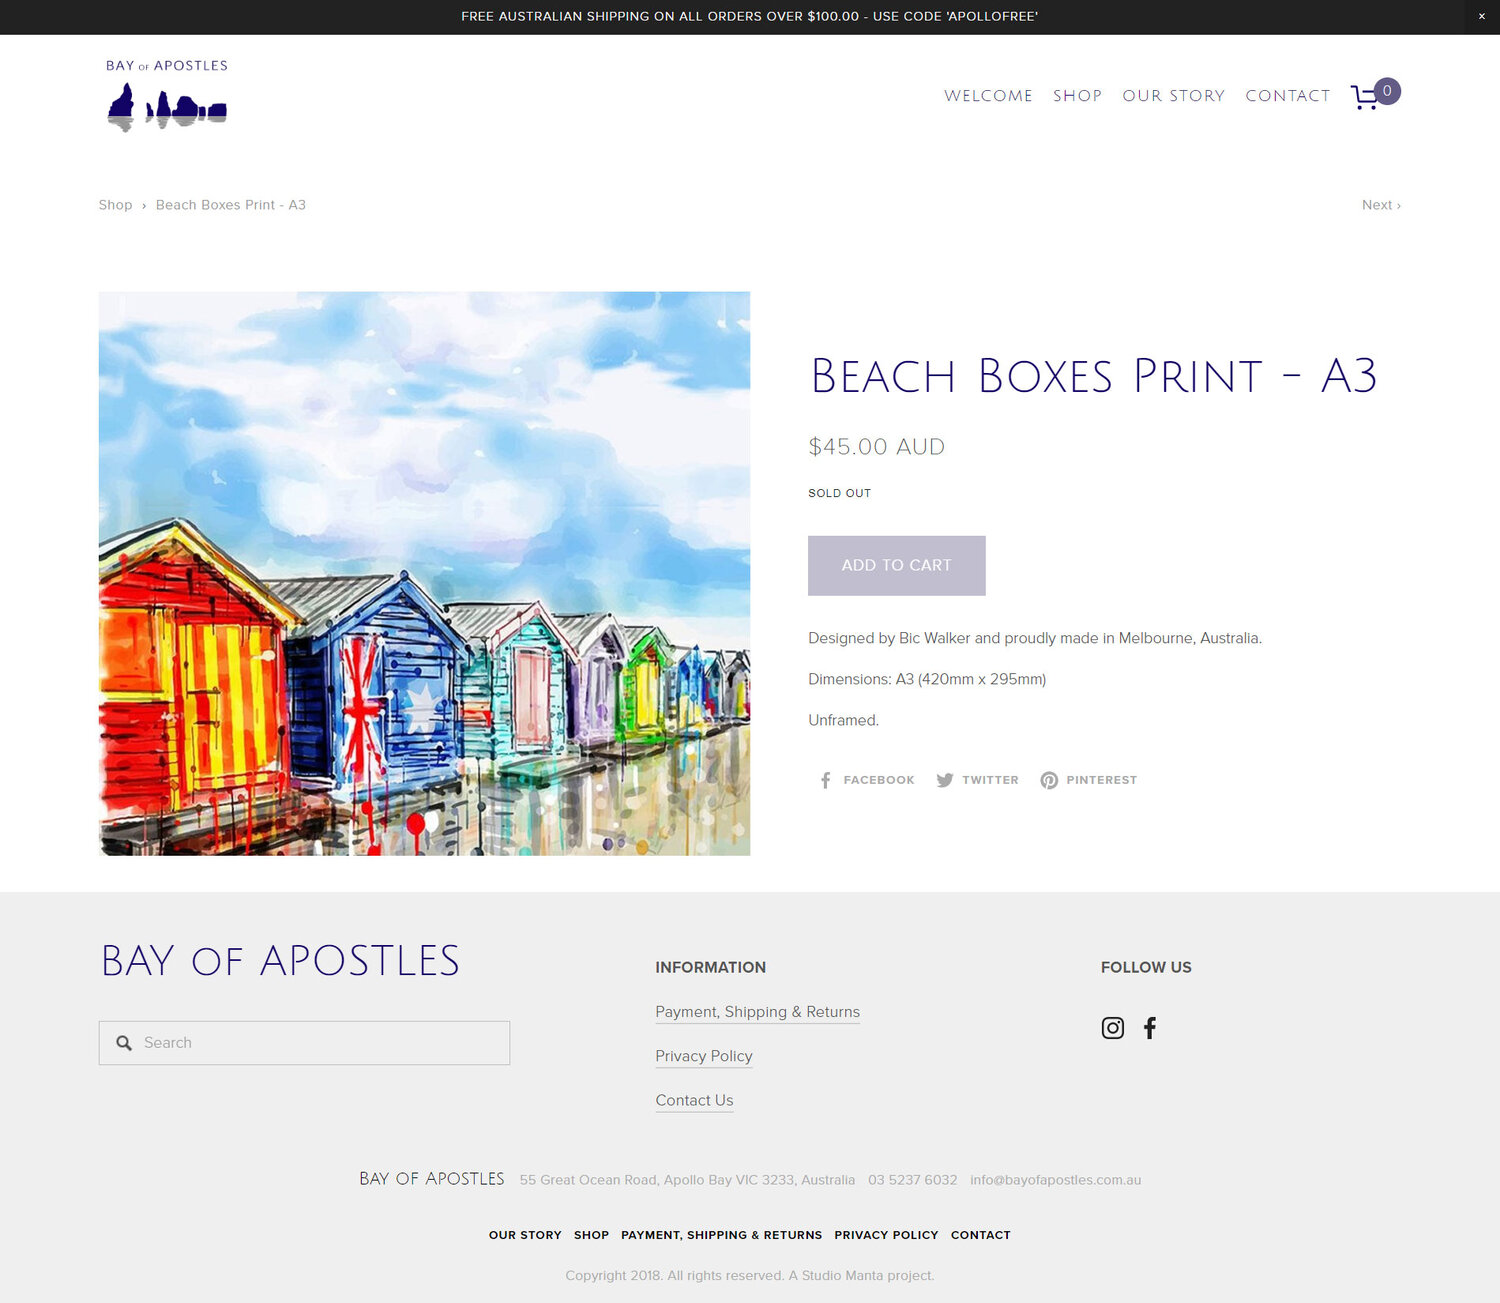 Bay of Apostles - Product Page